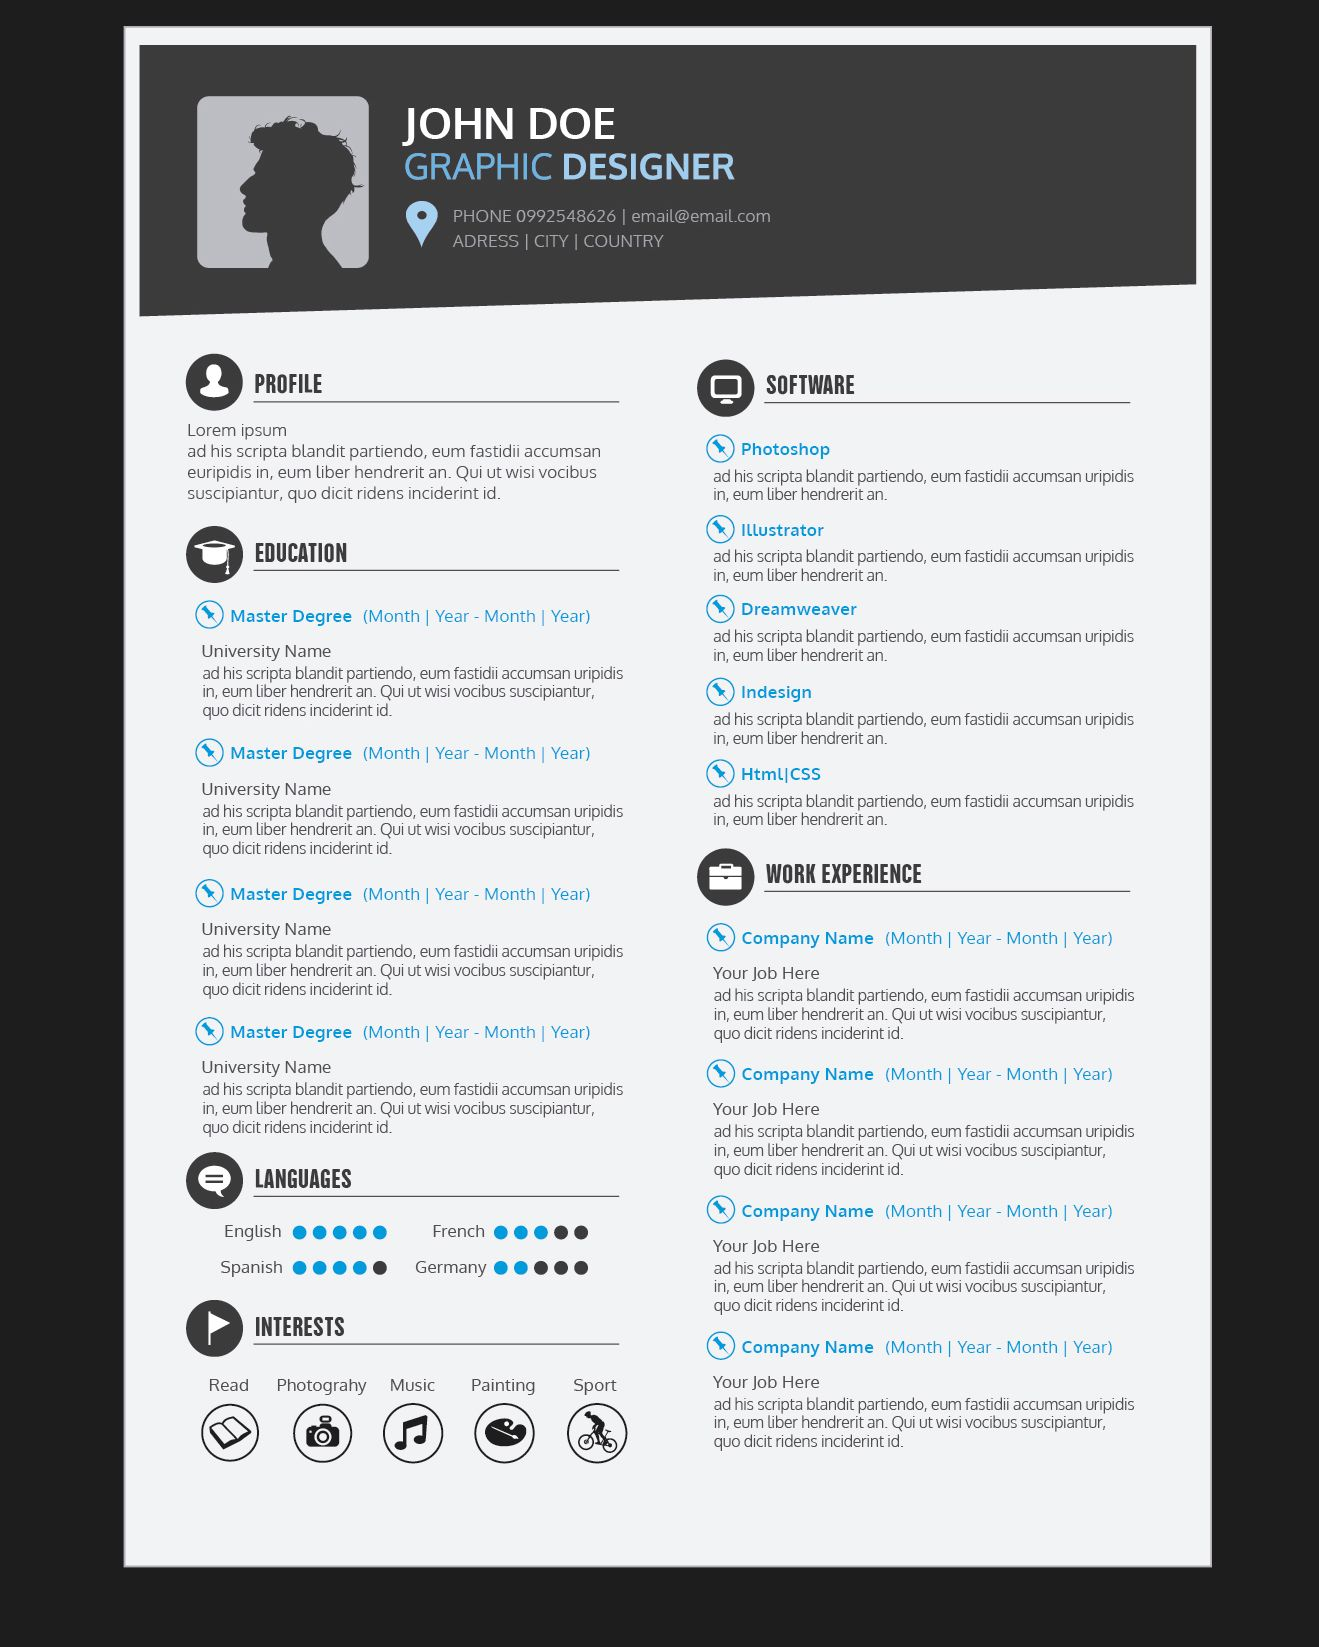 Charming Graphic Designer Resume CV. Download Large Image 1319x1647px. License  Image; User  Graphic Artist Resume